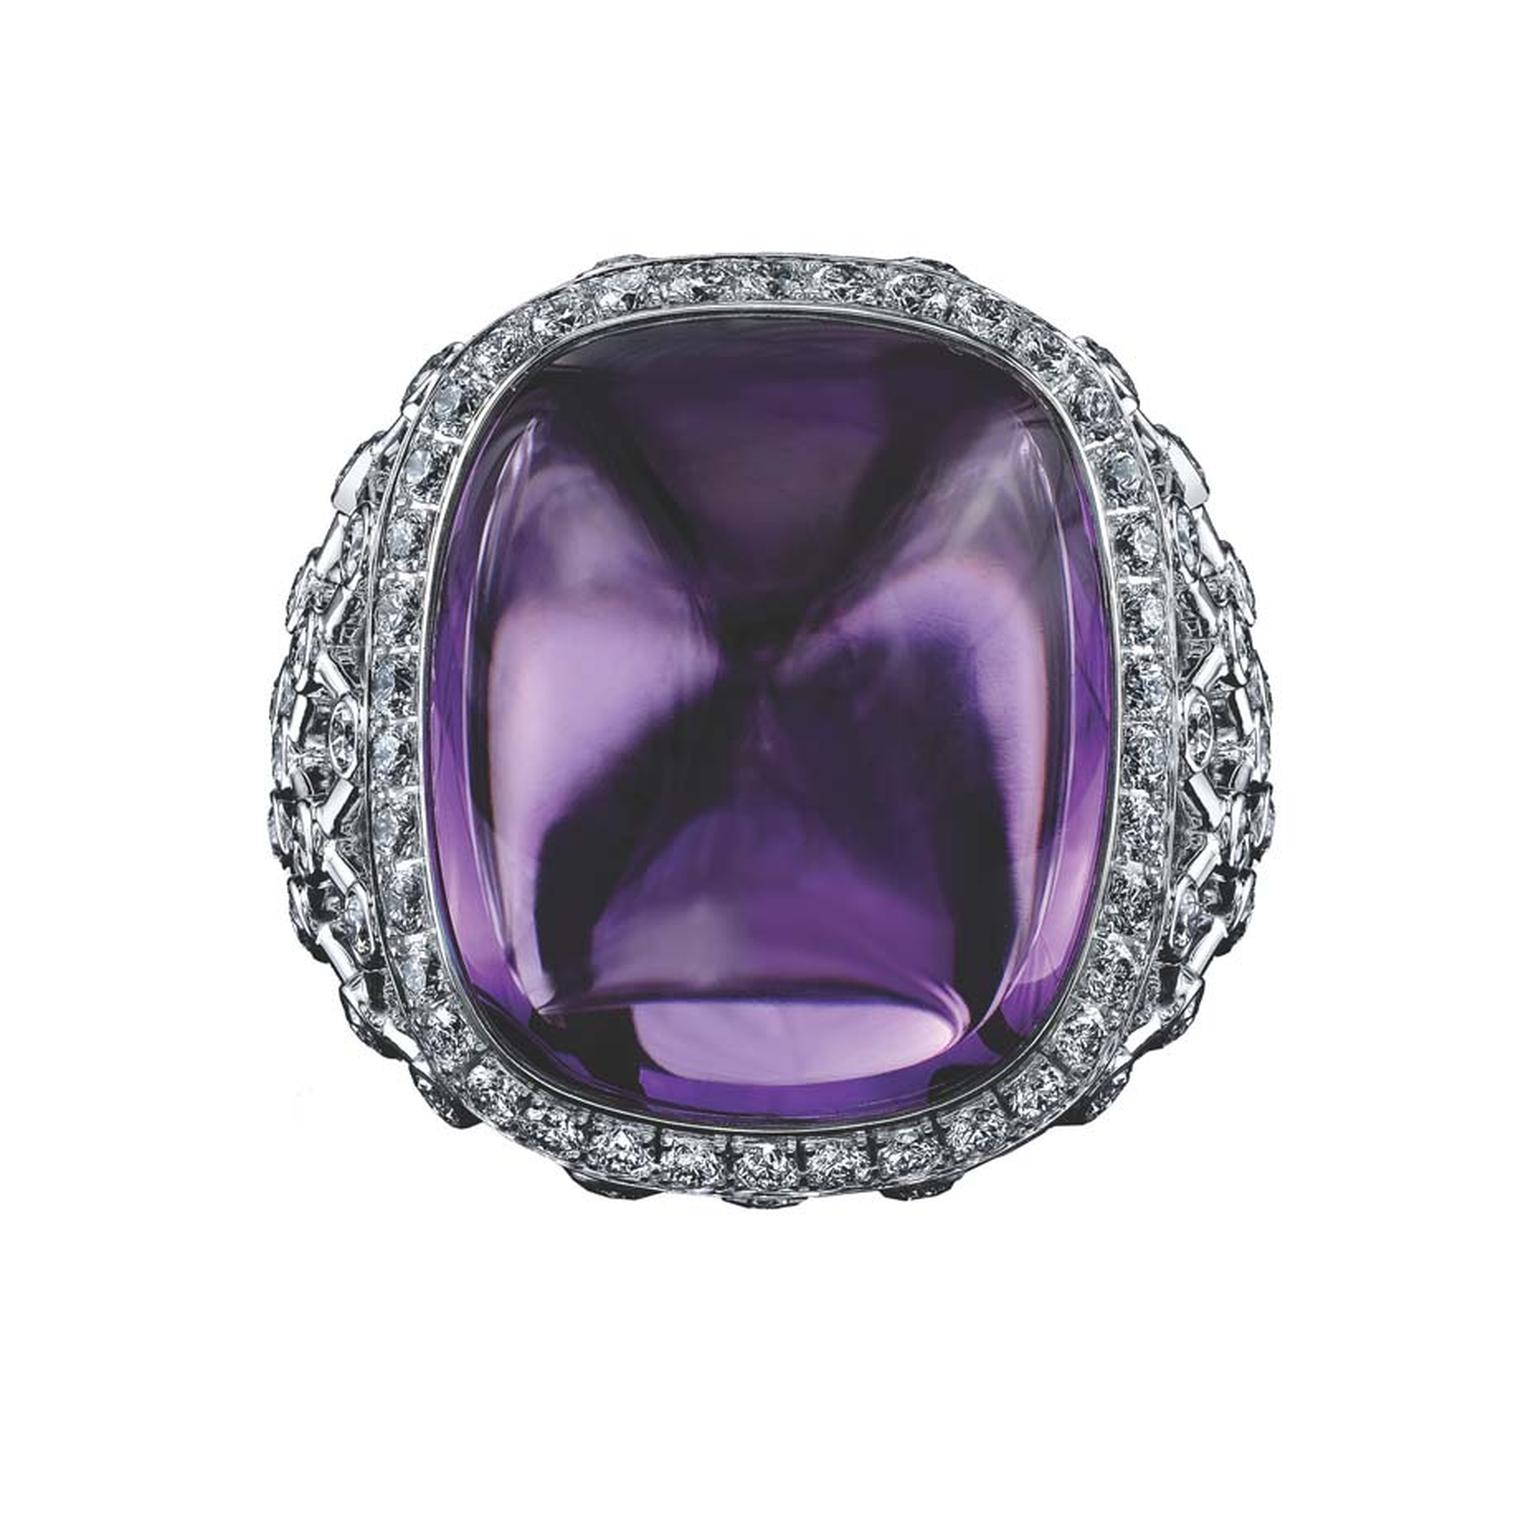 Robert Procop ring in white gold, from the Legacy Brooke collection, featuring an 18.00ct sugarloaf amethyst and diamonds ($11,000).